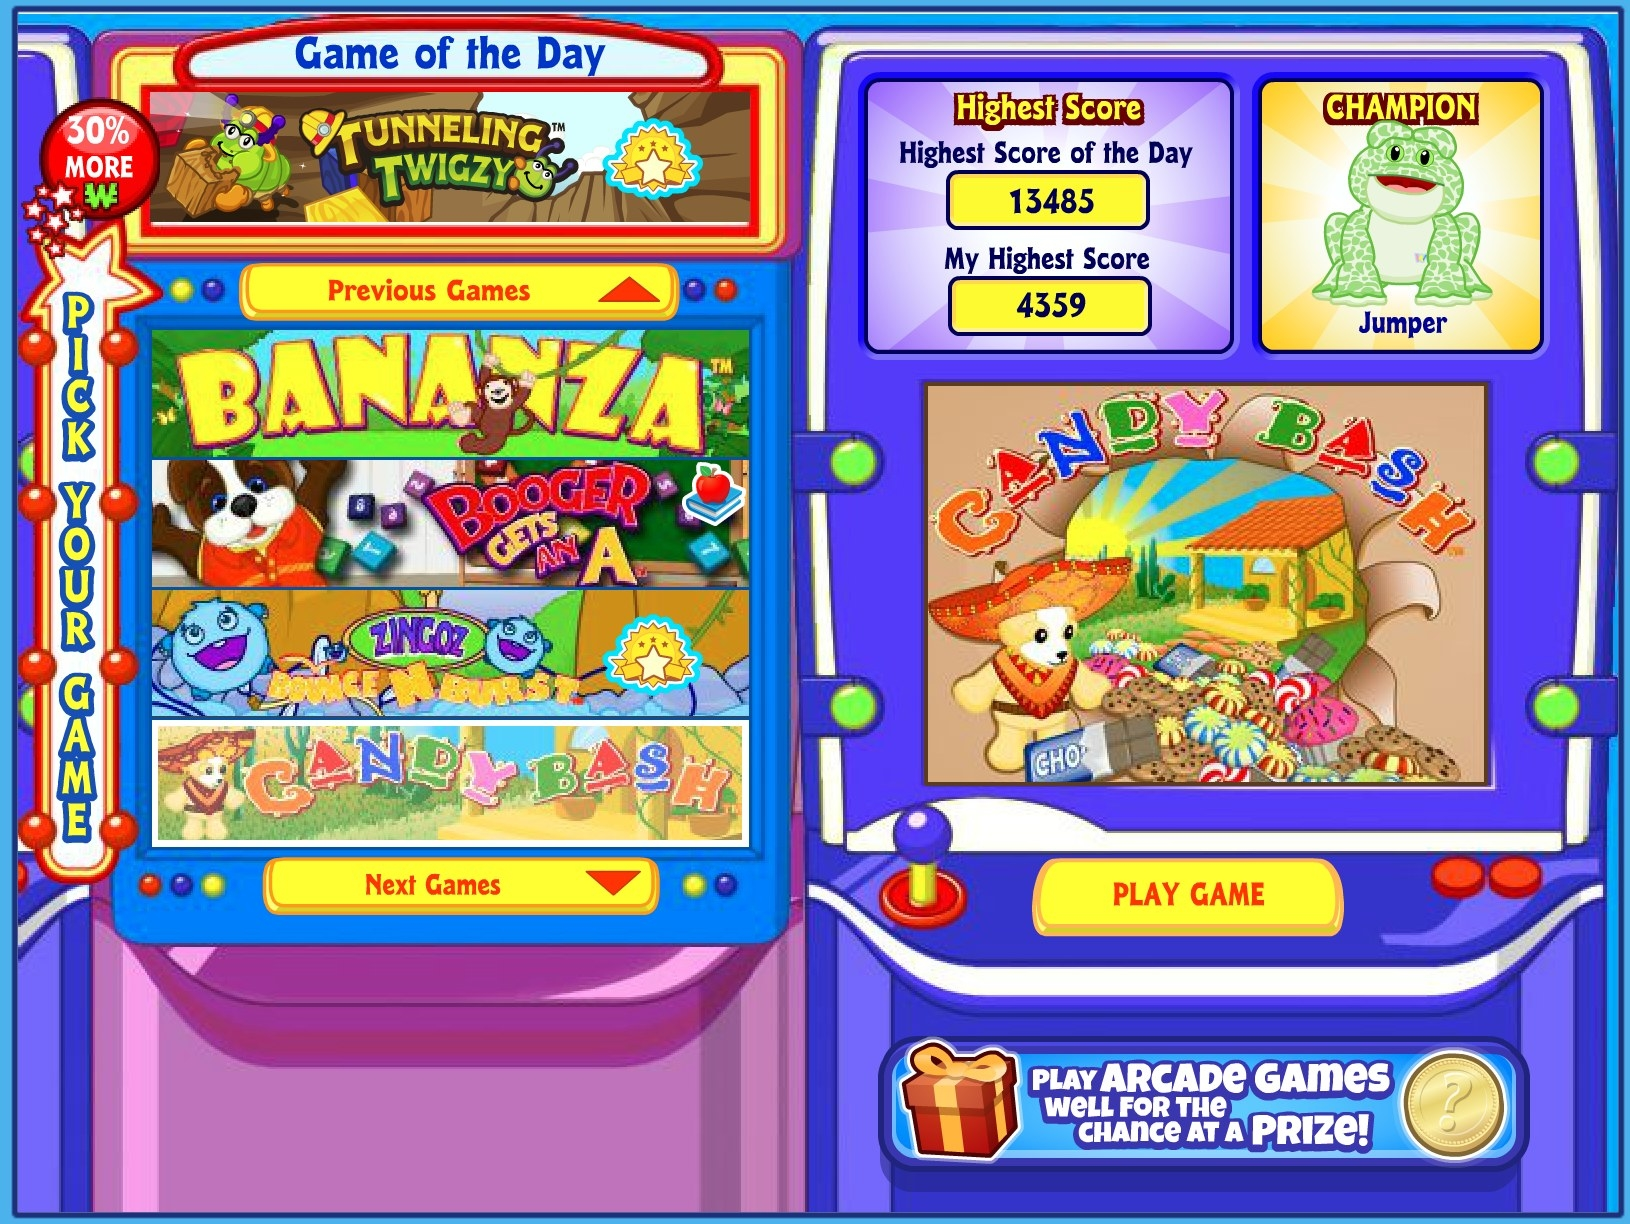 A screenshot of the Webkinz Arcade, including rh games Bananza, Booger Gets an A, and Candy Bash